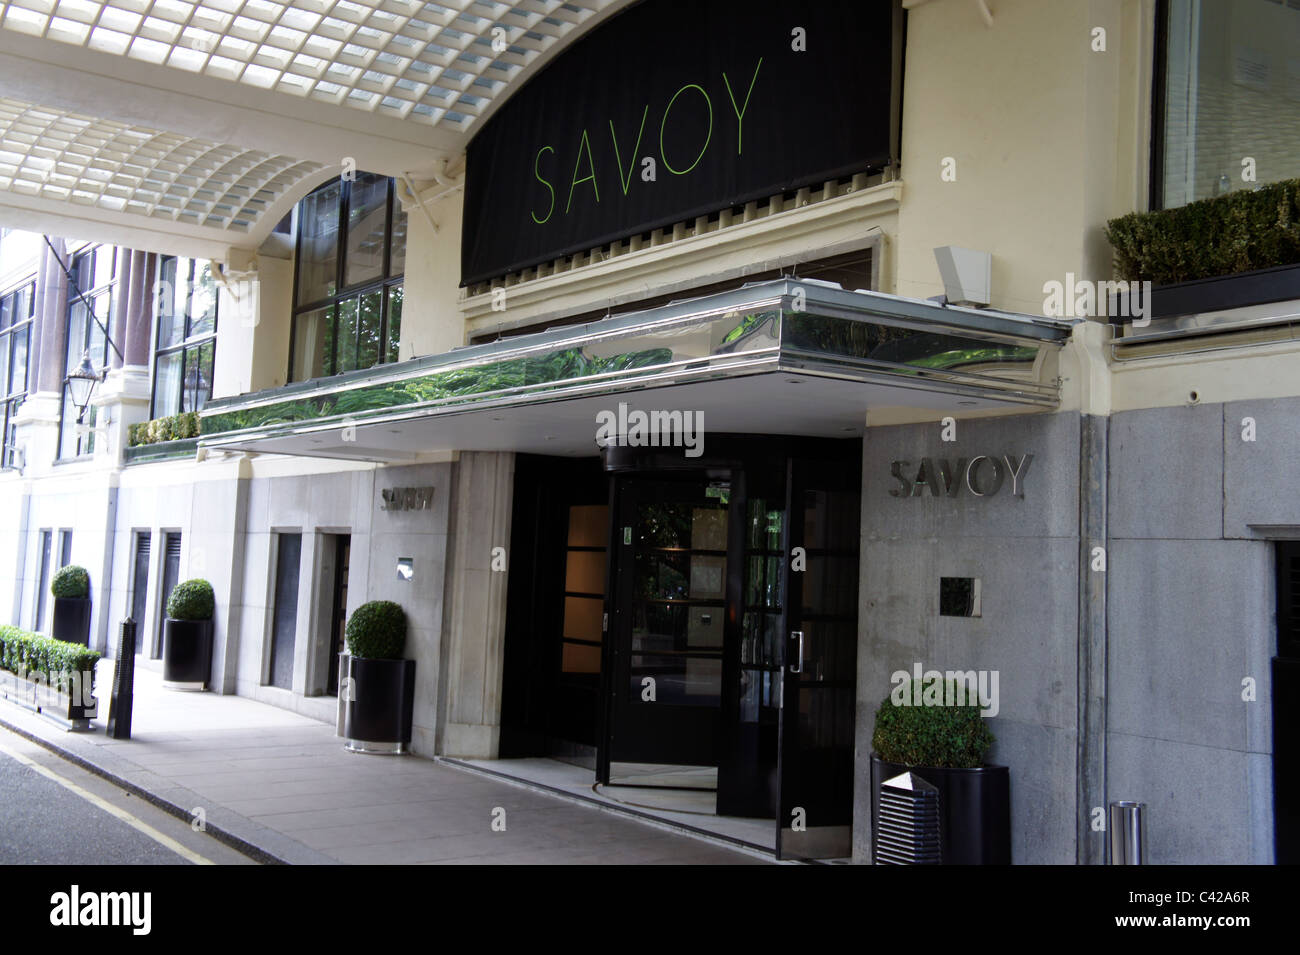 Savoy Place entrance to the savoy Hotel, London England - Stock Image